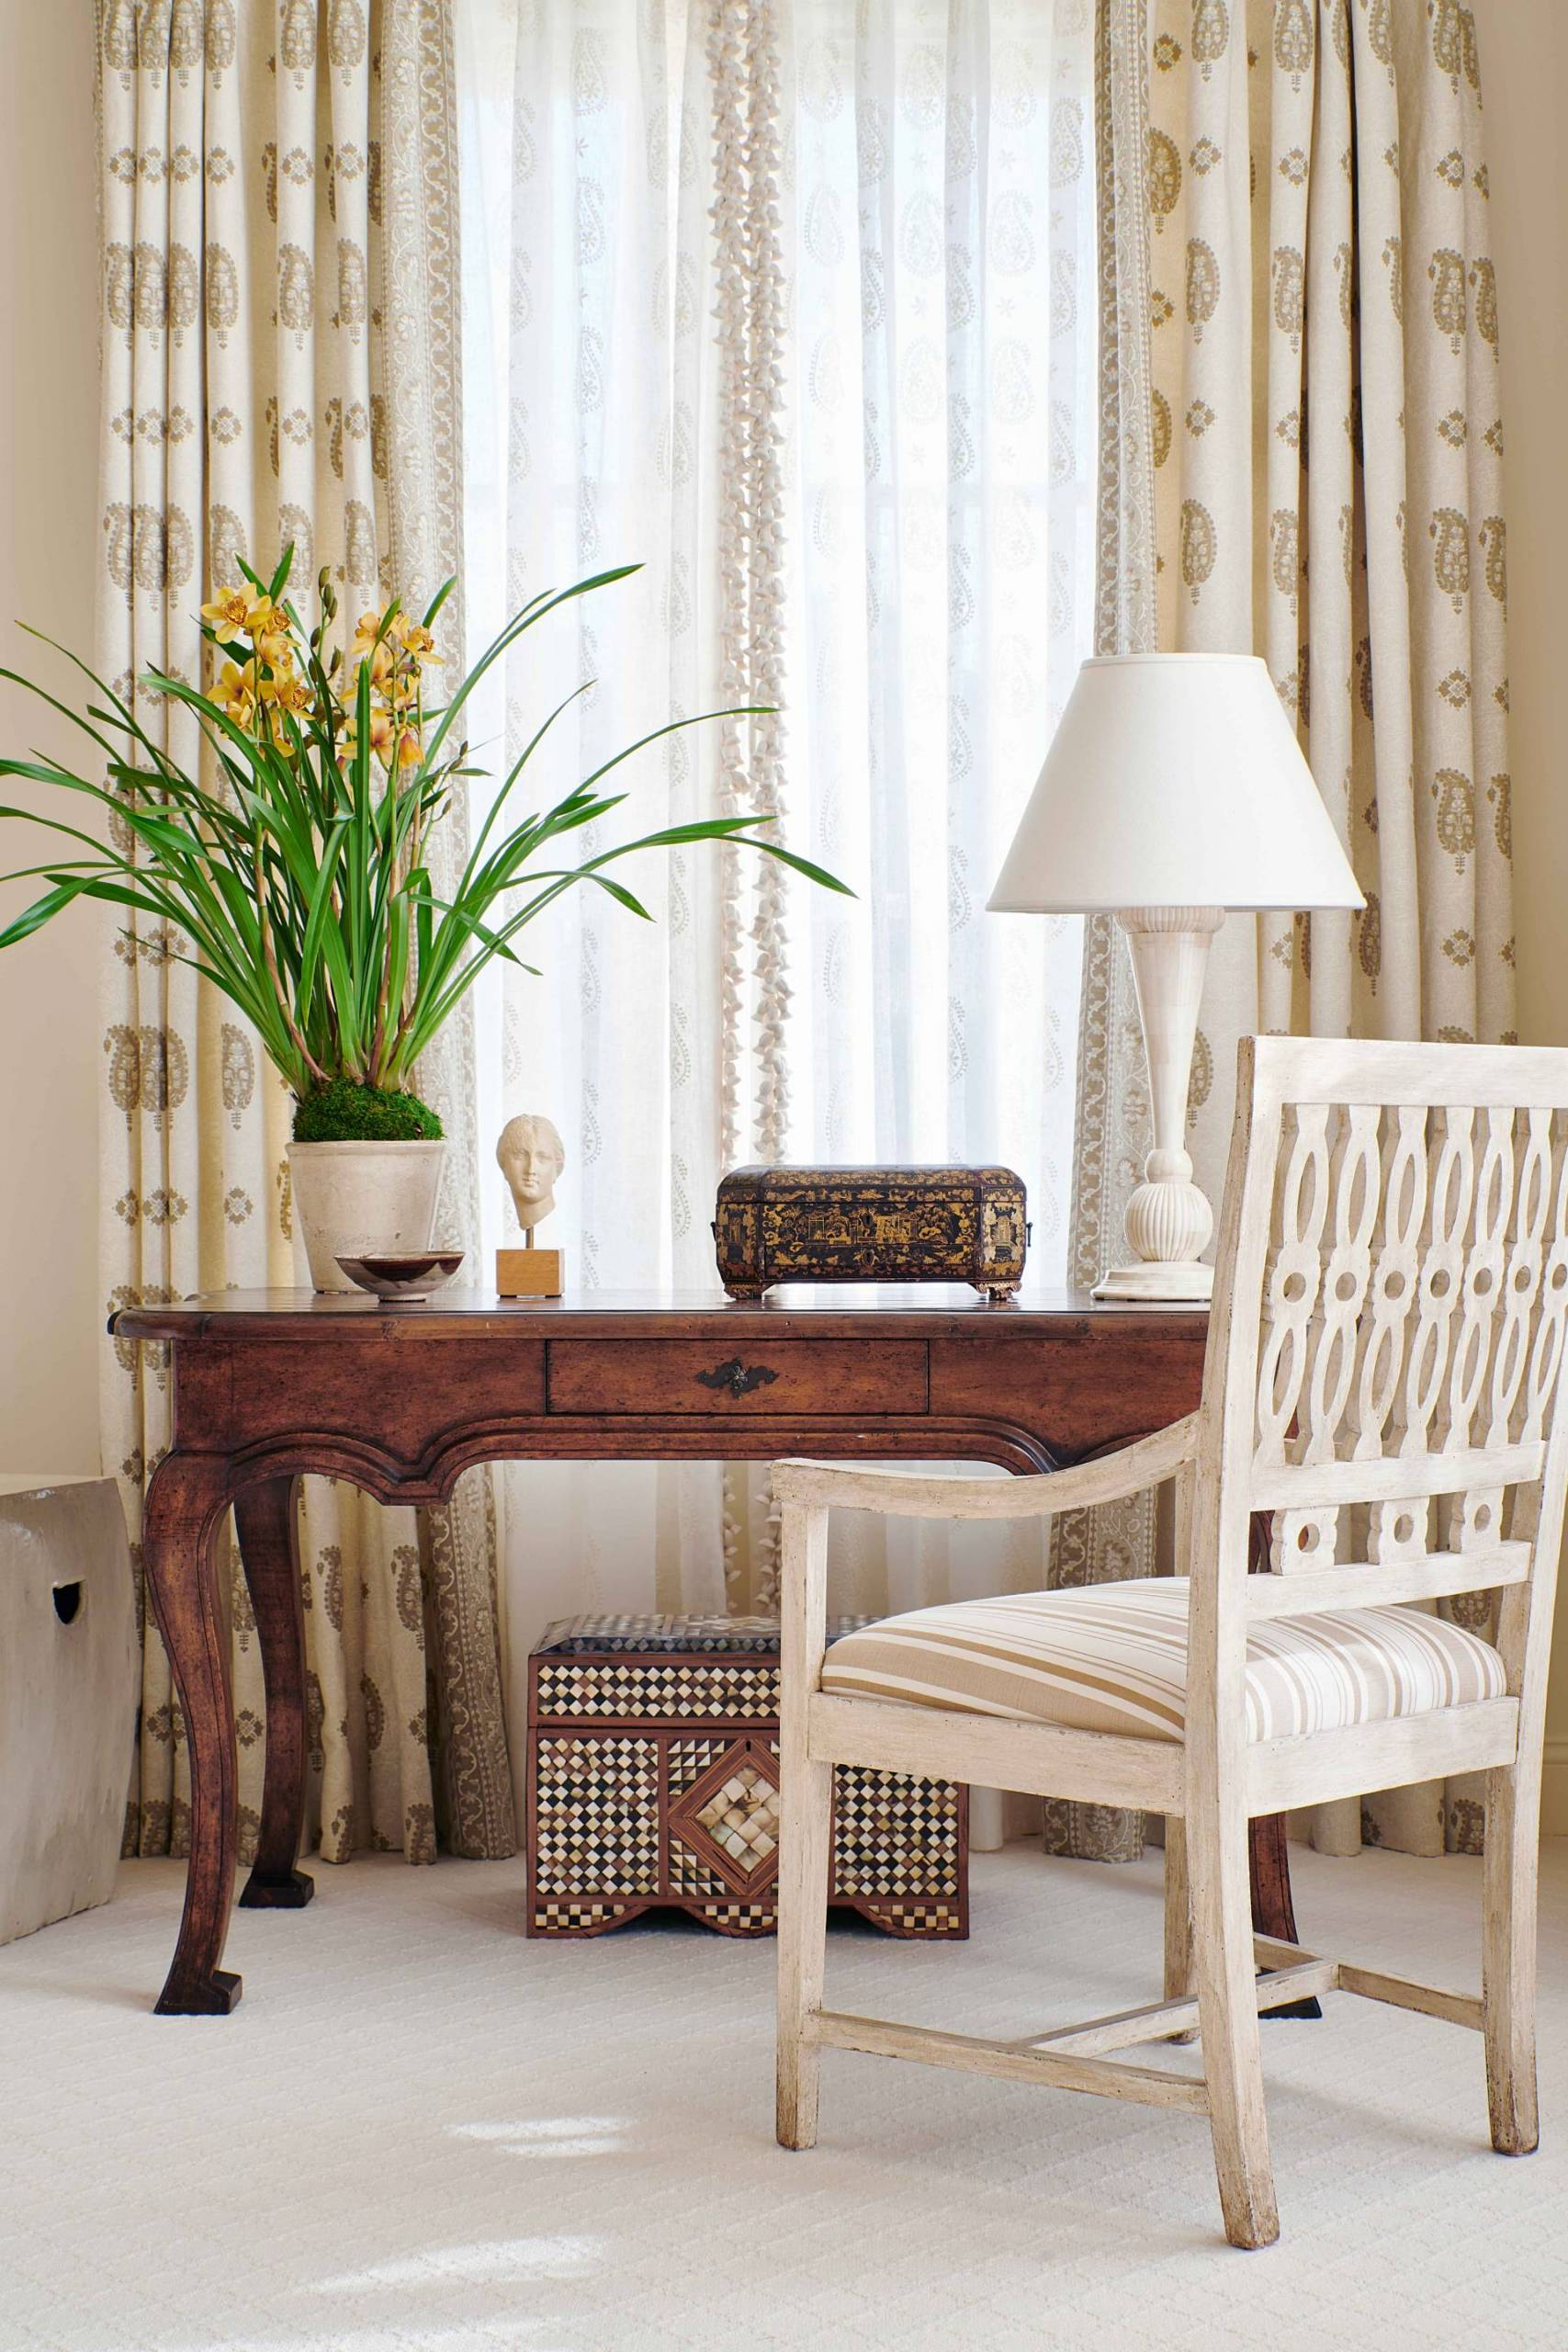 Overdrapes and Sheers in Front of Desk